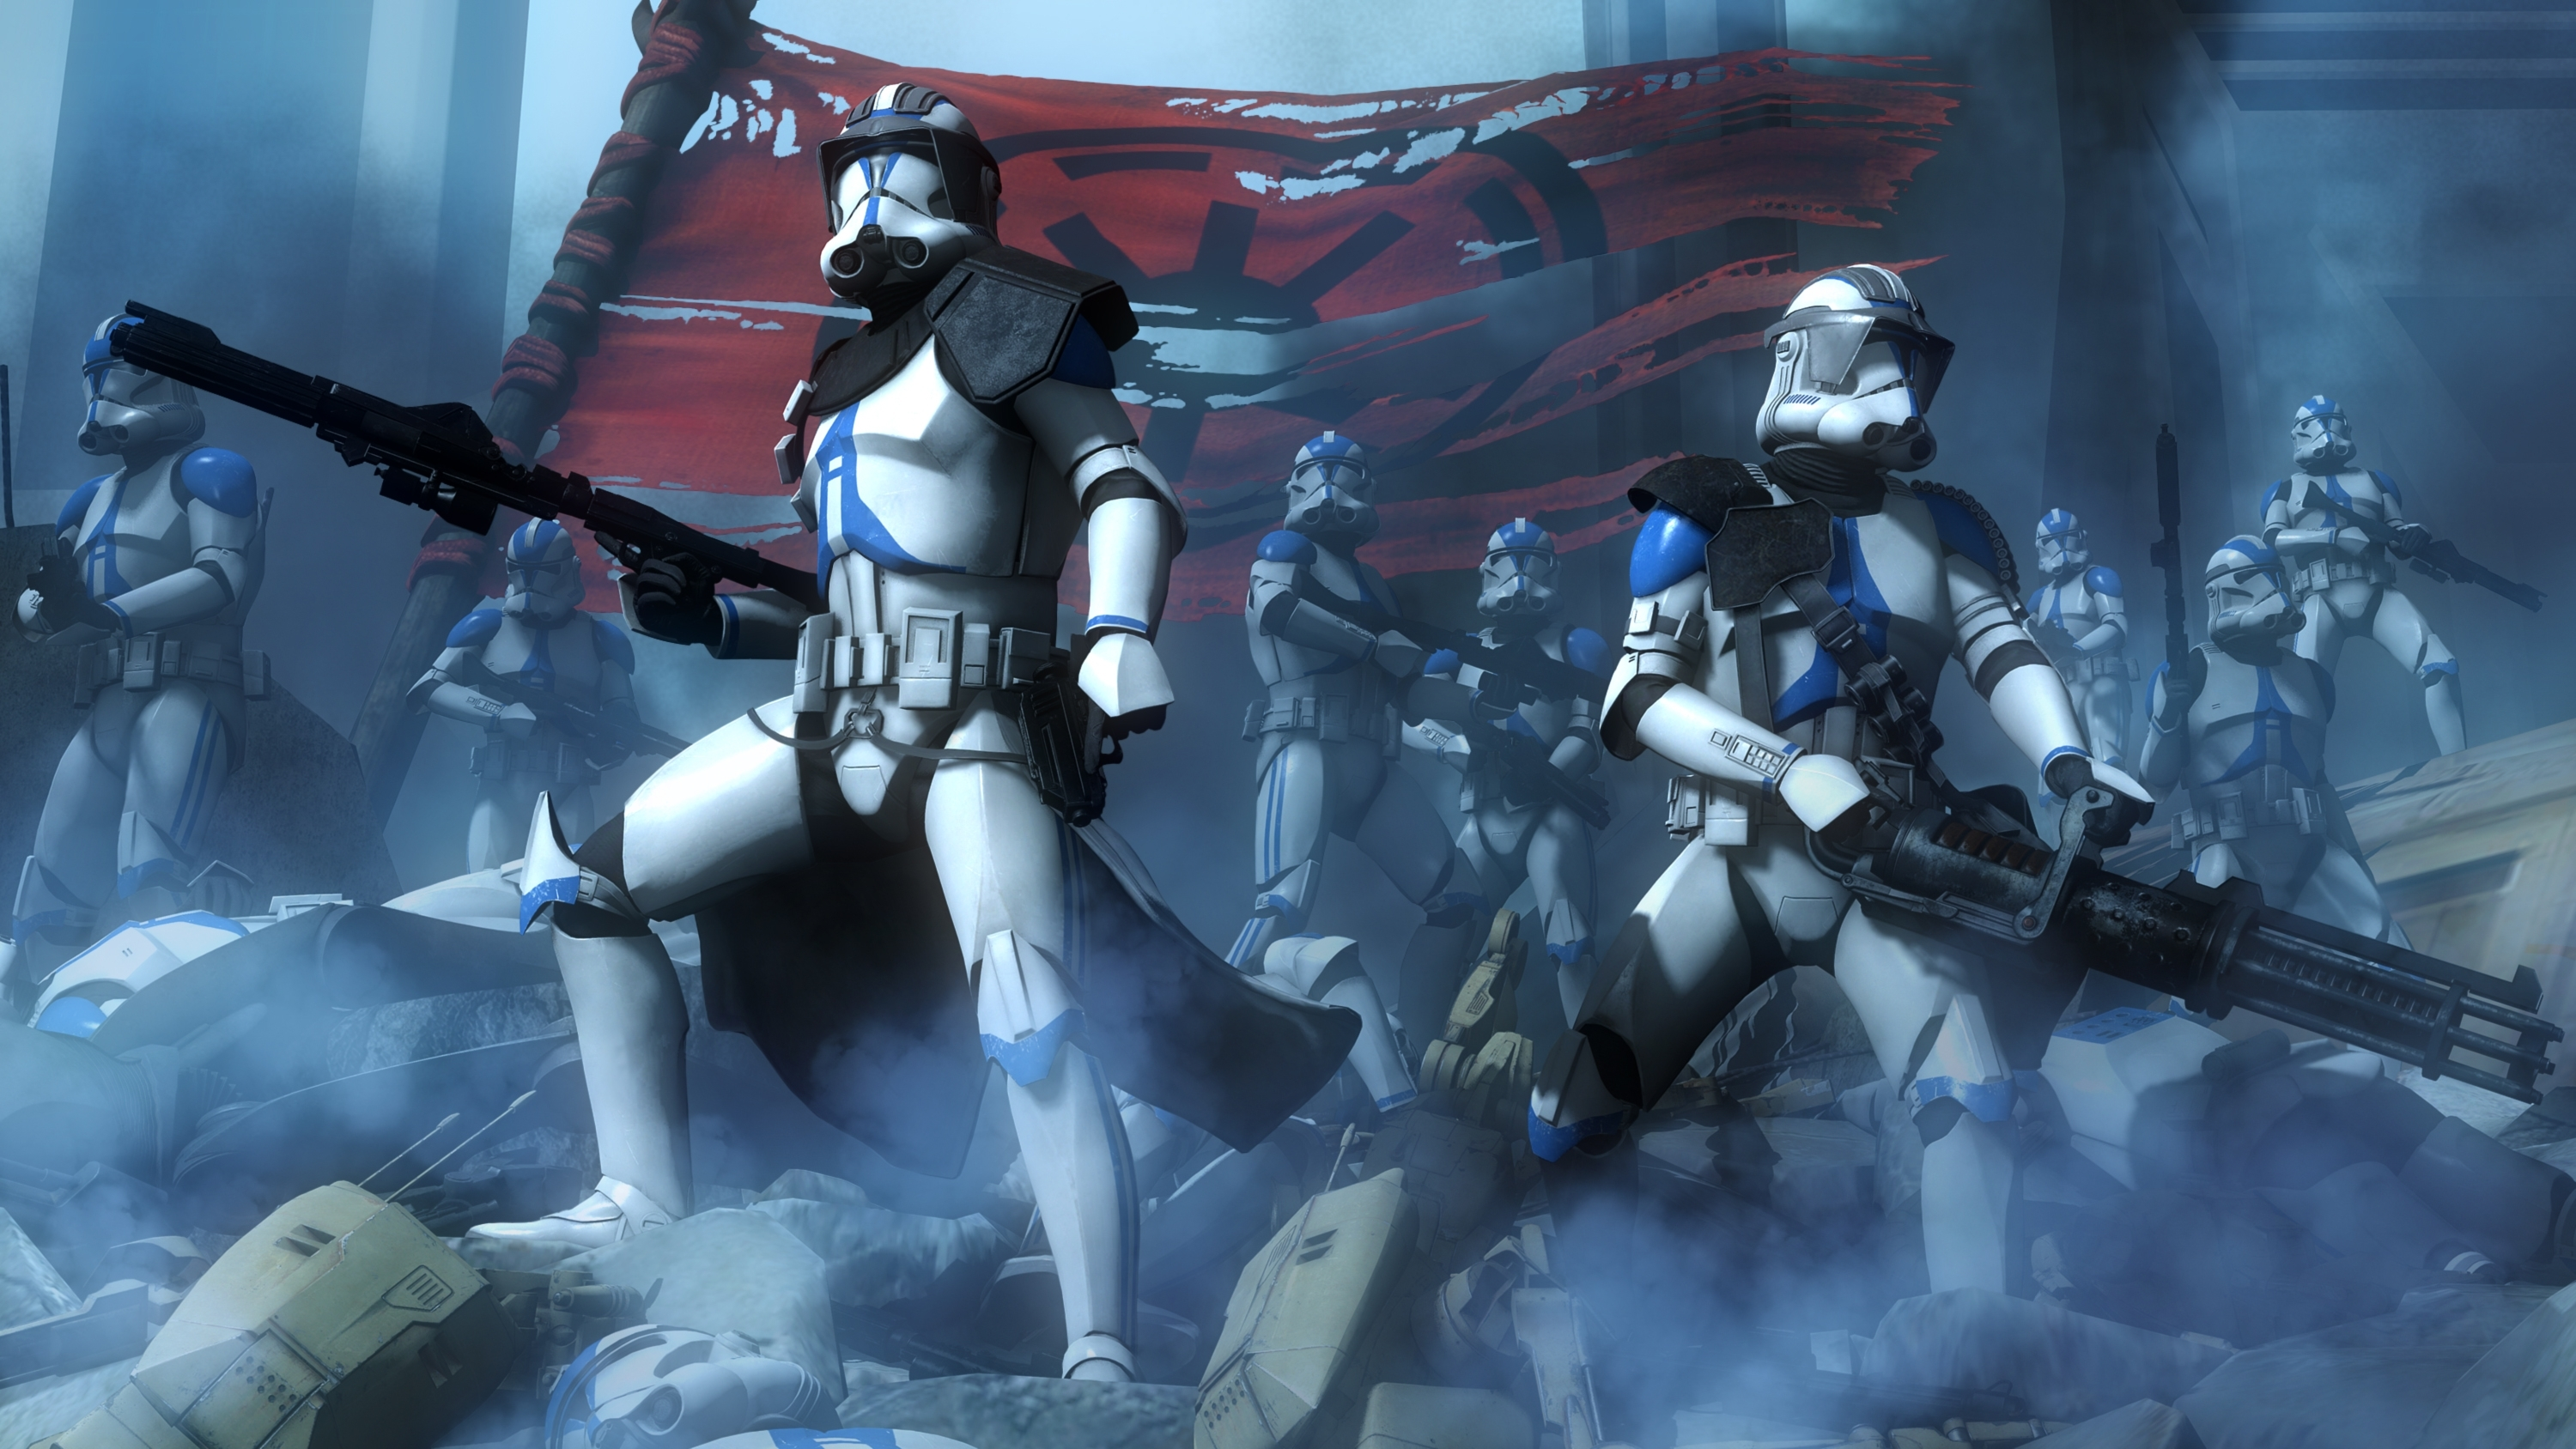 star wars: the clone wars full hd fond d'écran and arrière-plan